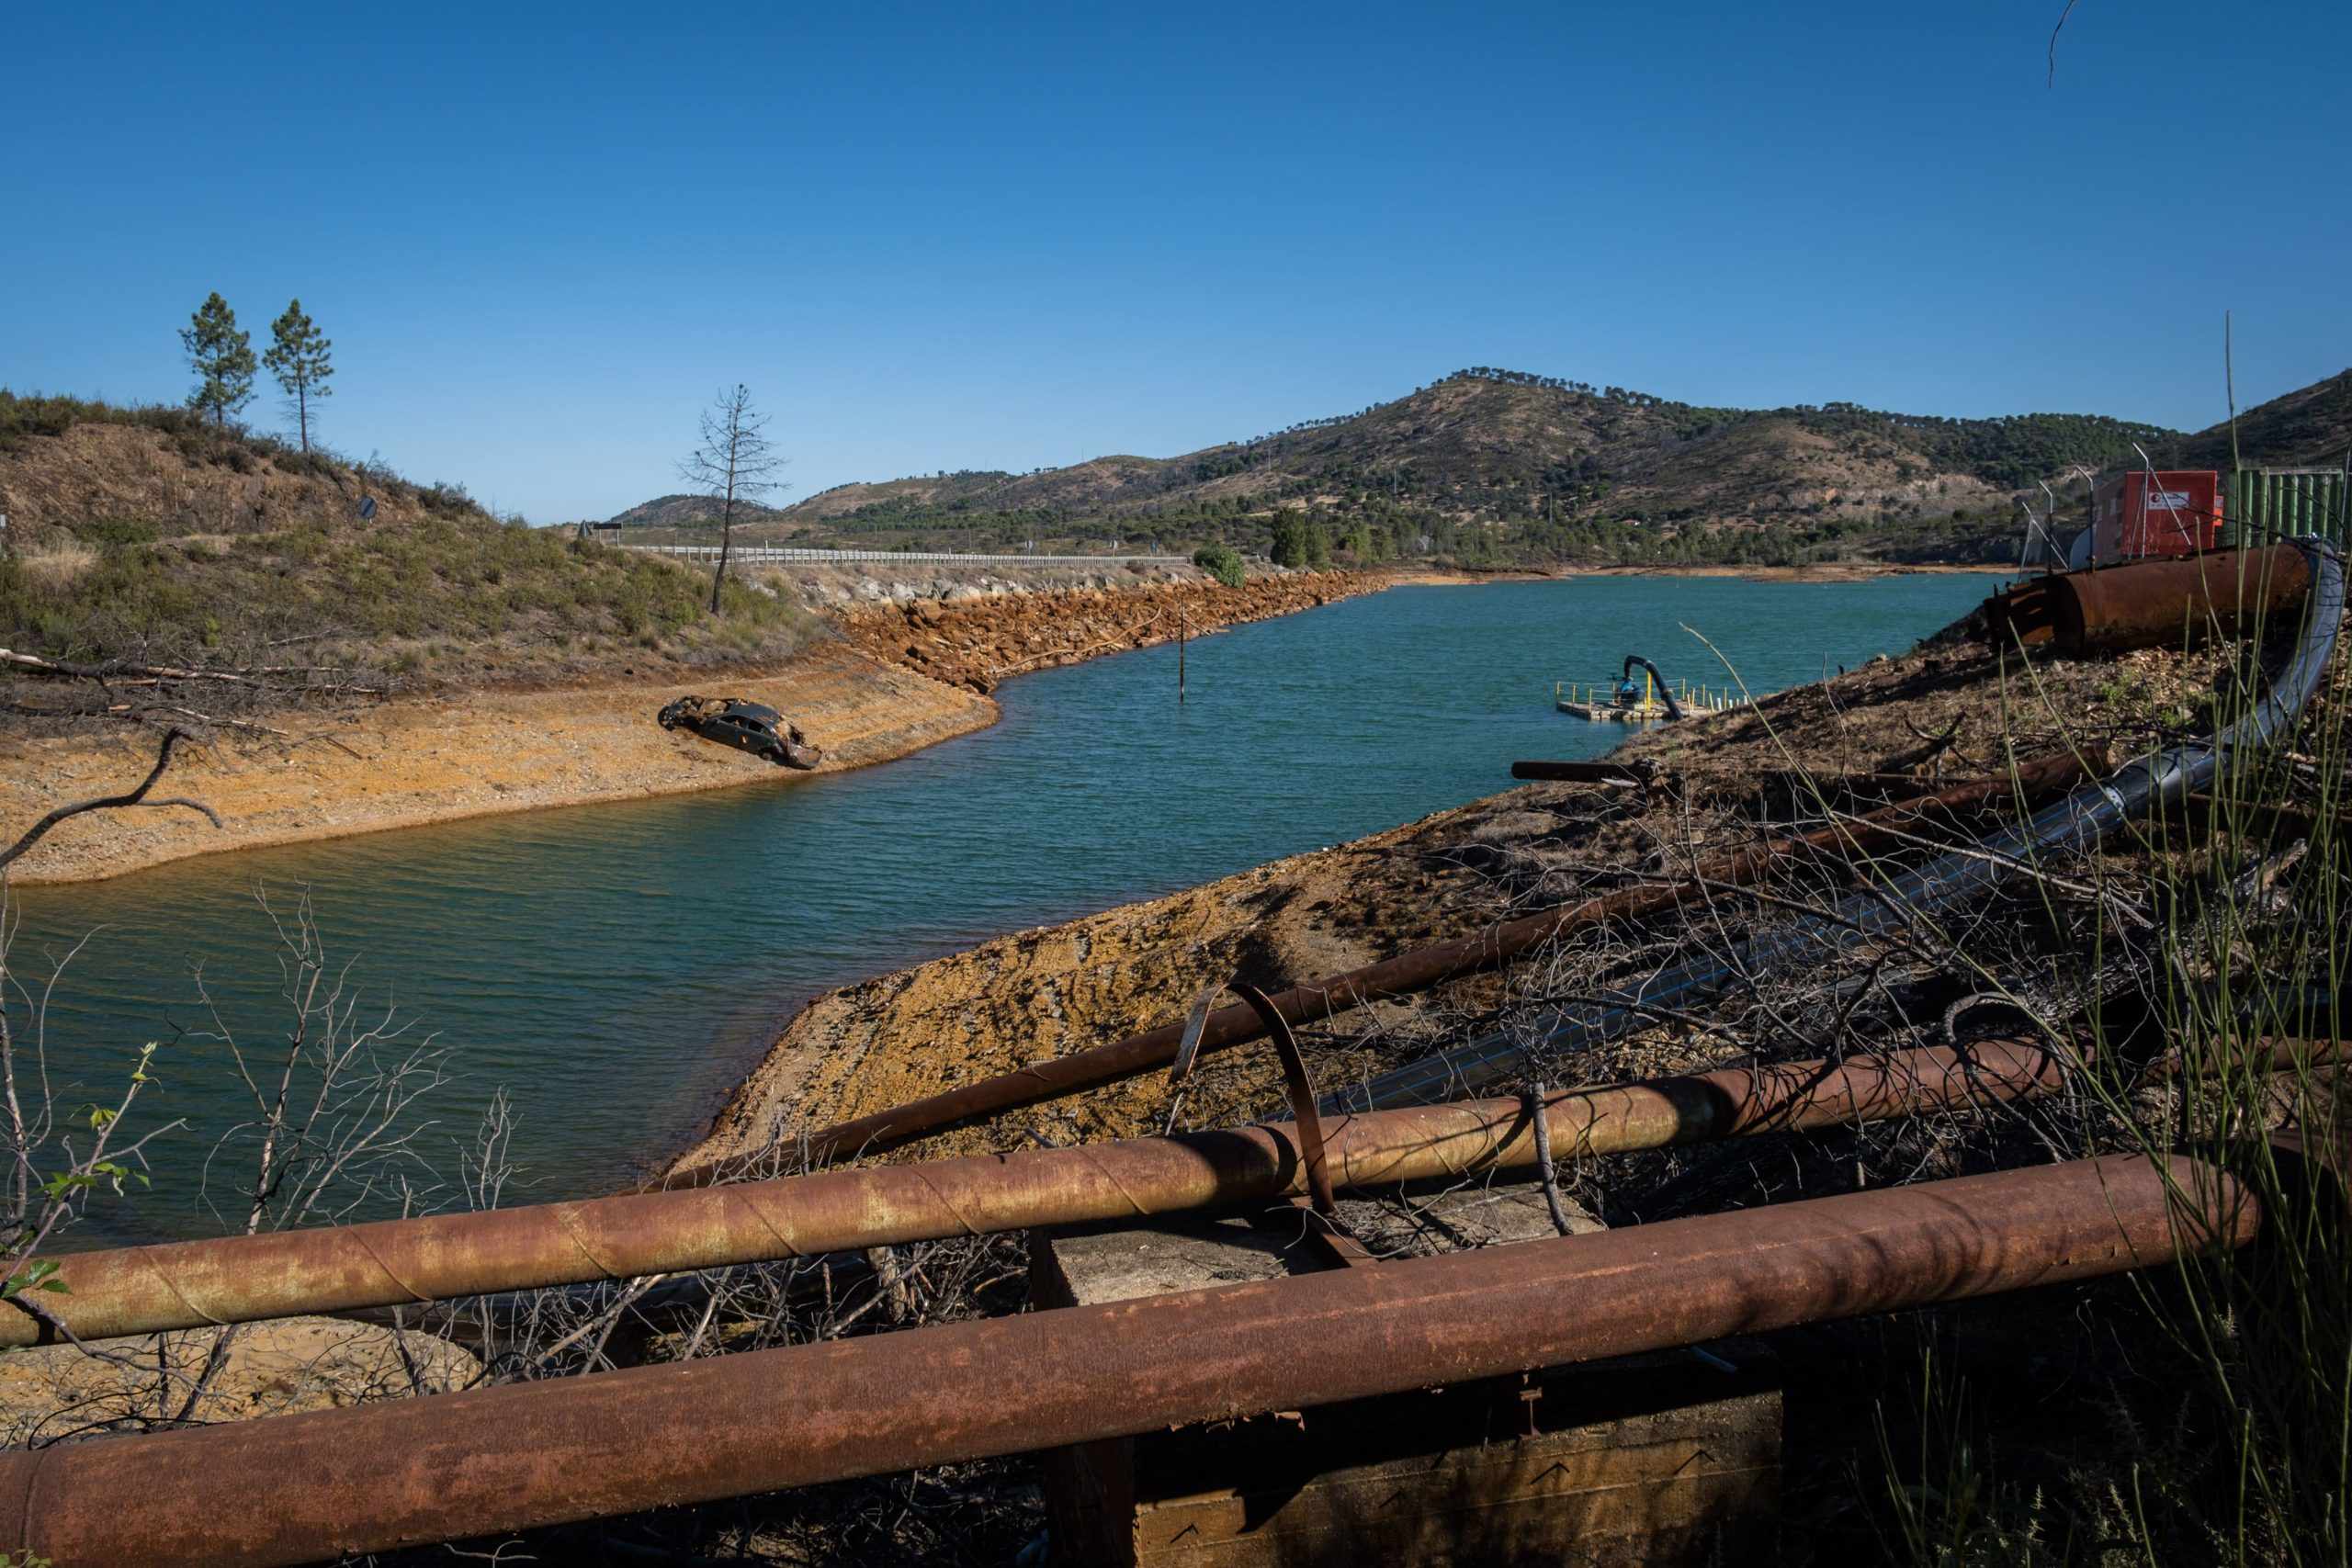 press,photo,photojournalism,documentary,photography,spain,environment,sustainability,copper,minery